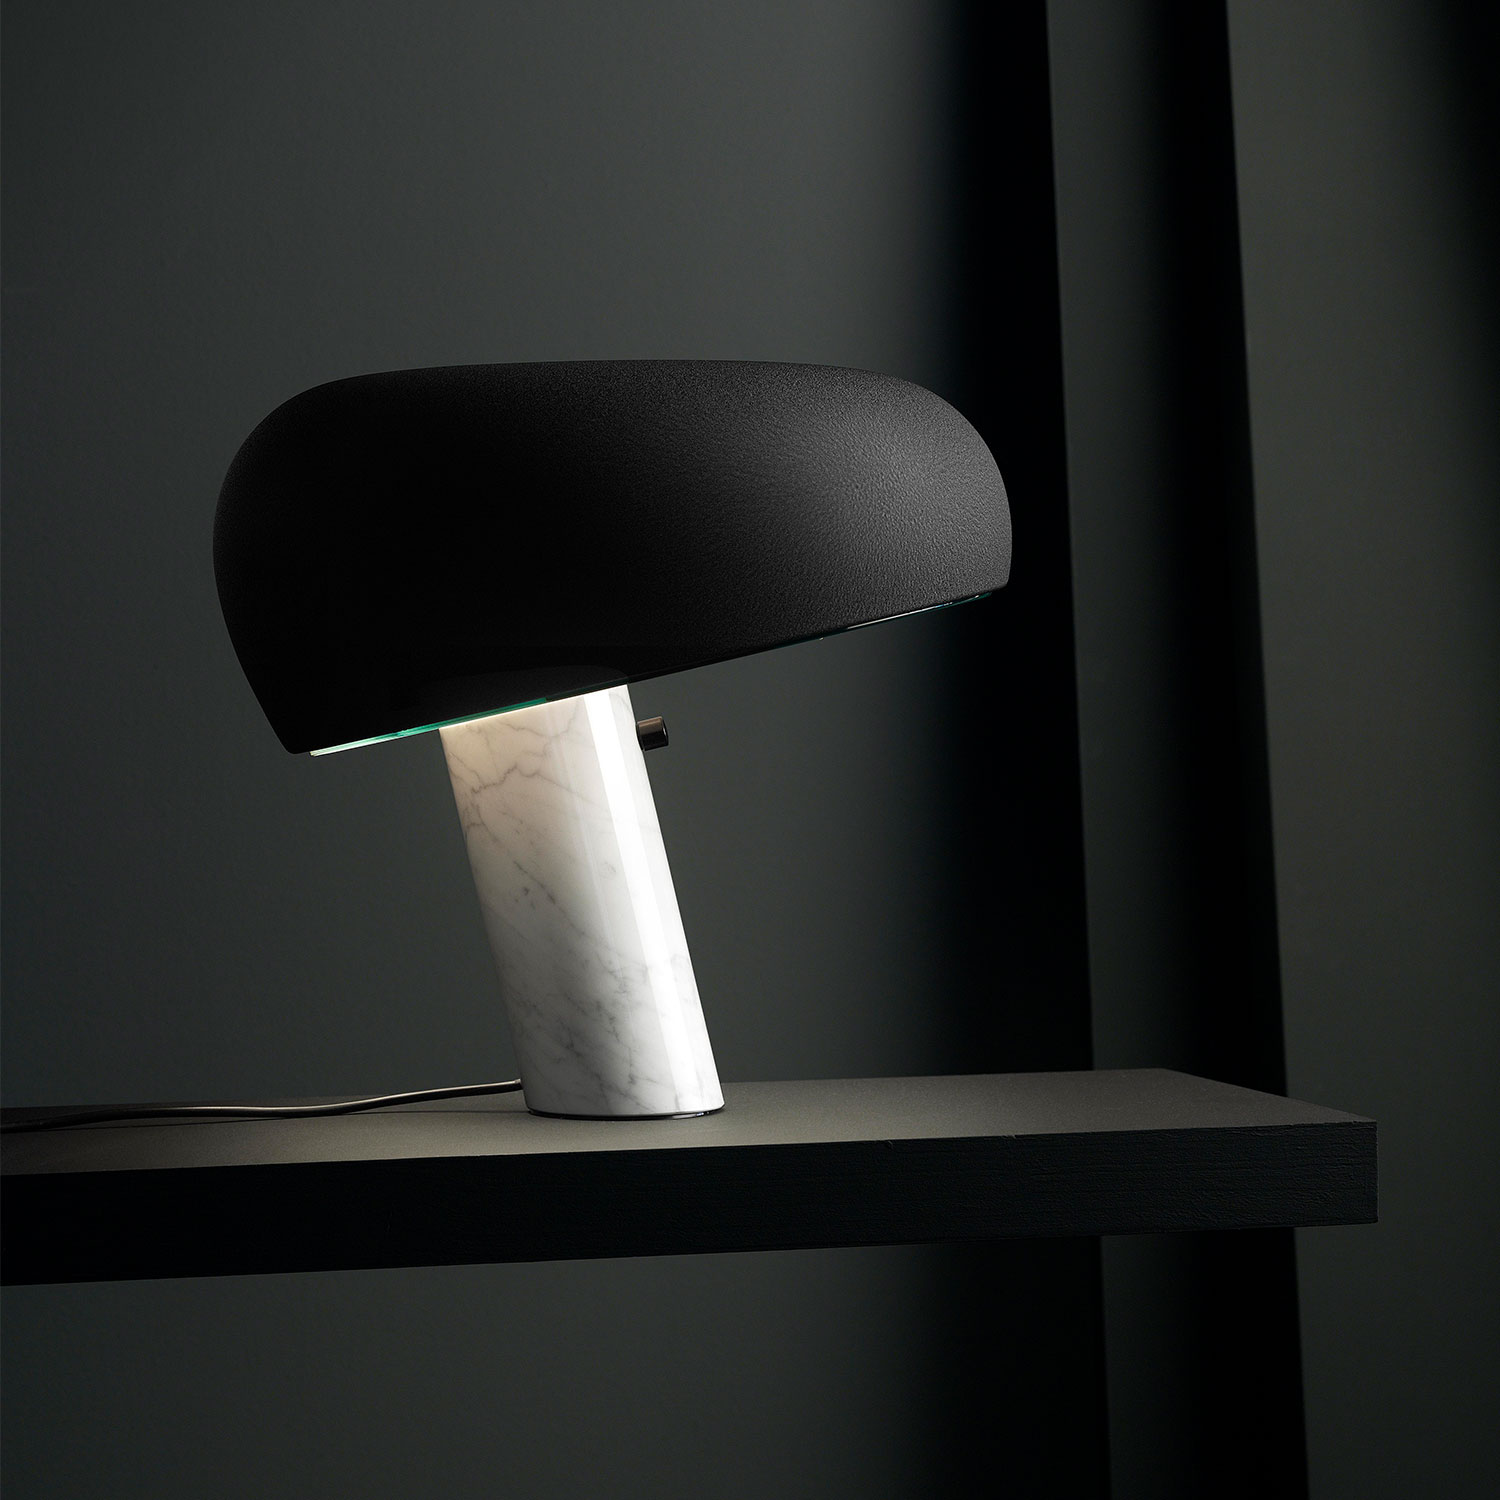 Snoopy Bordslampa, 50th Anniversary Edition Pier Giacomo